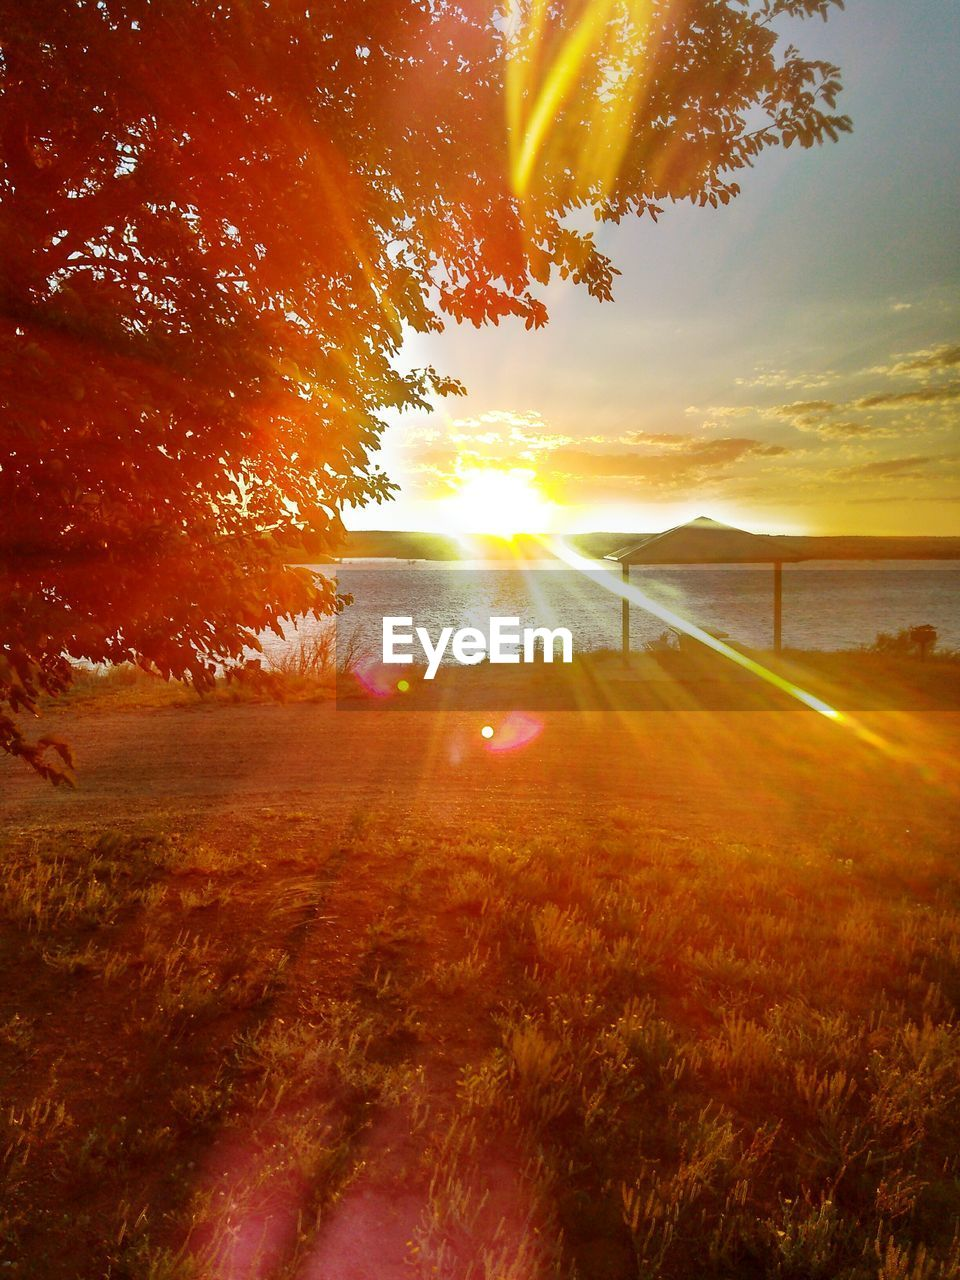 sunbeam, sunset, sun, nature, sunlight, lens flare, beauty in nature, orange color, scenics, tranquil scene, tree, tranquility, no people, outdoors, field, water, landscape, growth, sky, grass, day